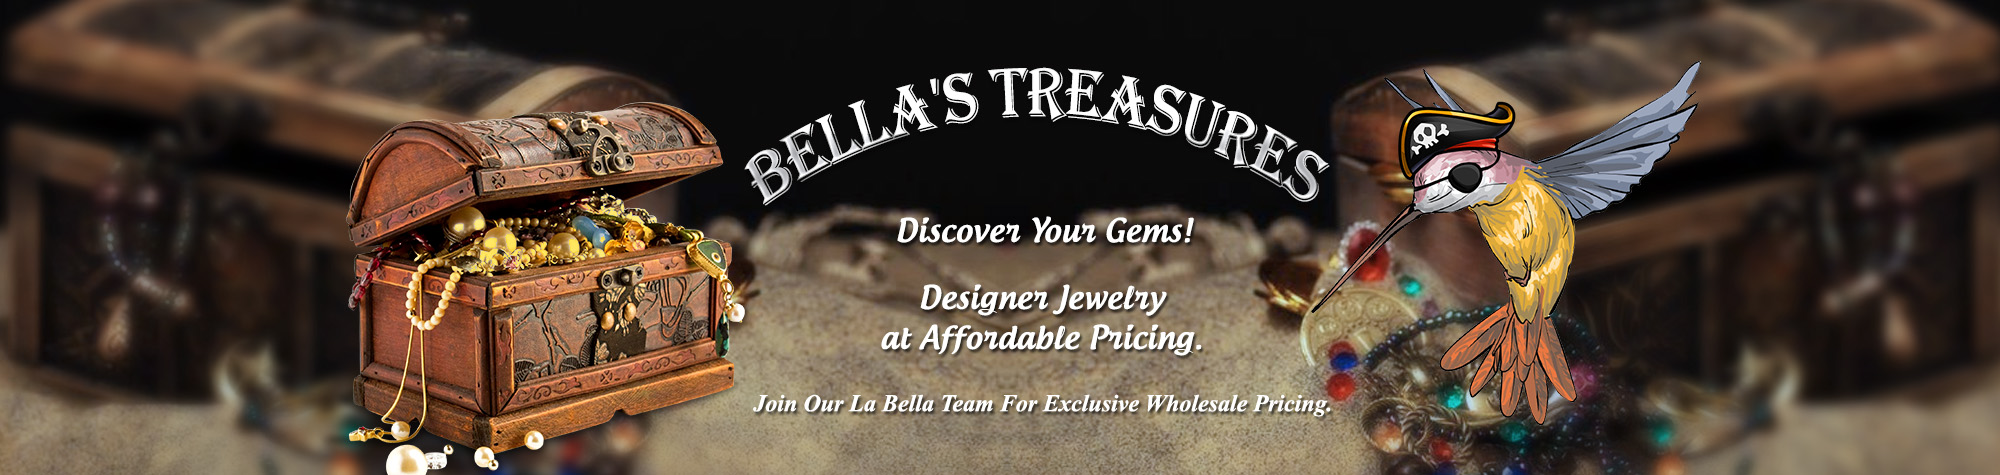 Bellas Treasure